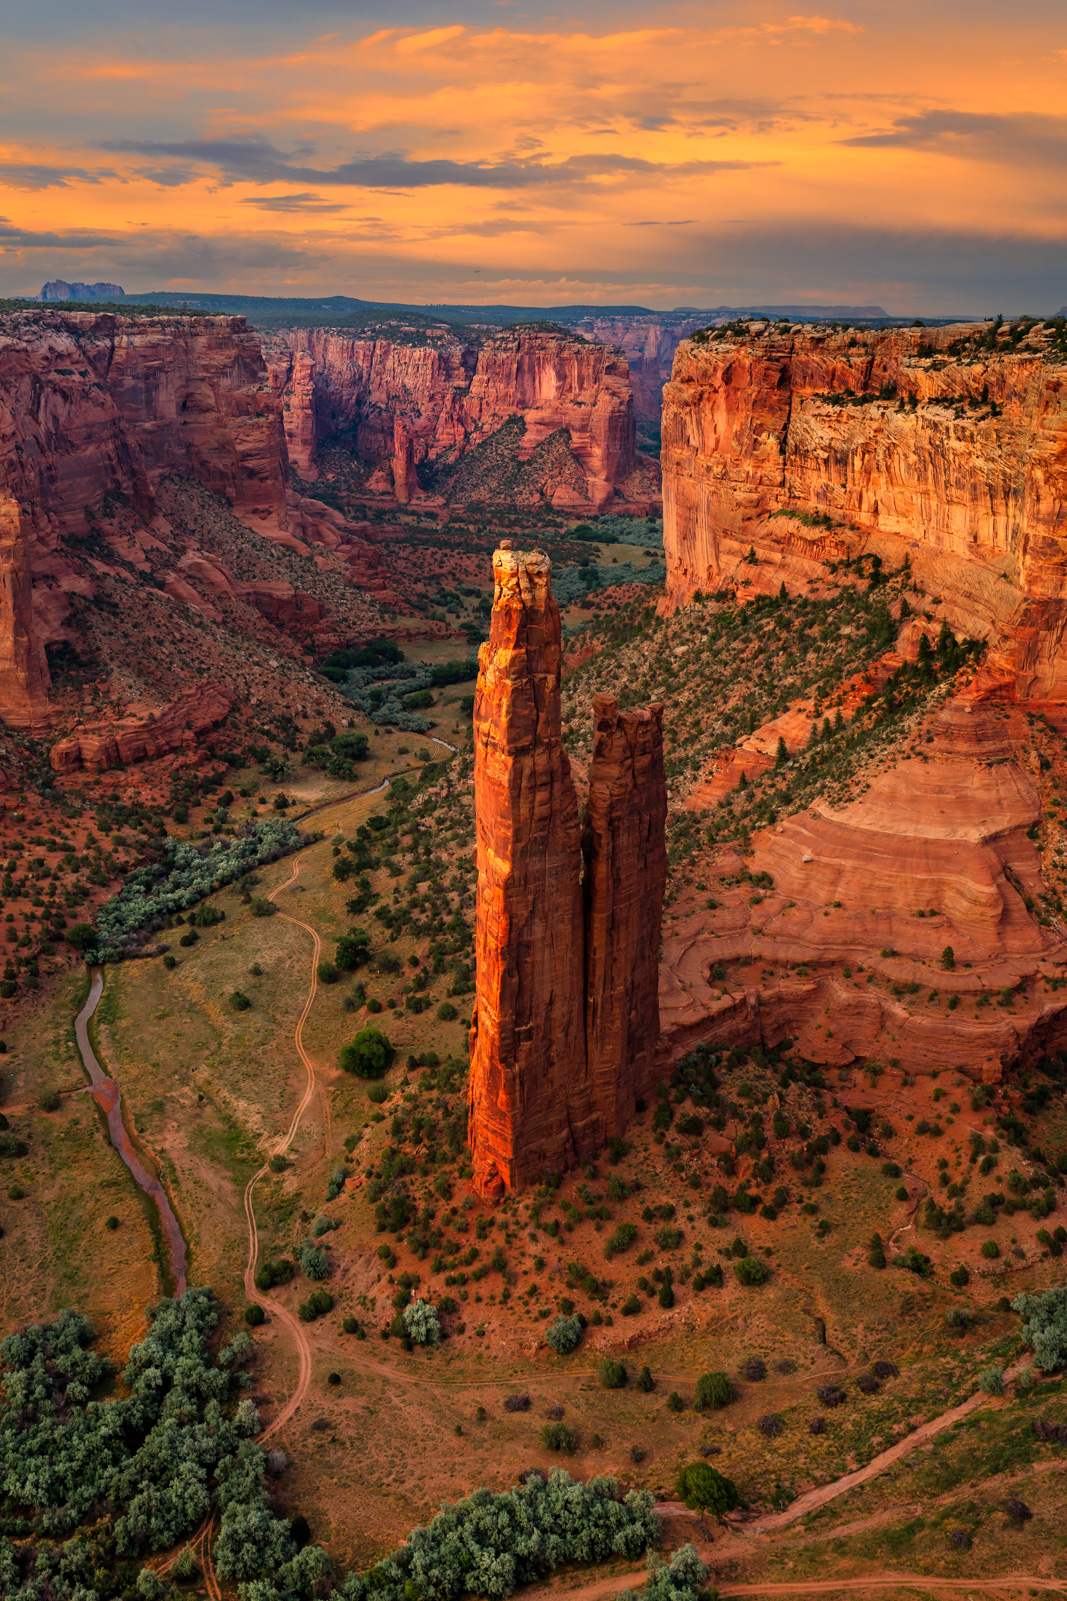 A Limited Edition, Fine Art photograph of beautiful sunset skies at Spider Rock at Canyon de Chelly National Monument in Arizona...